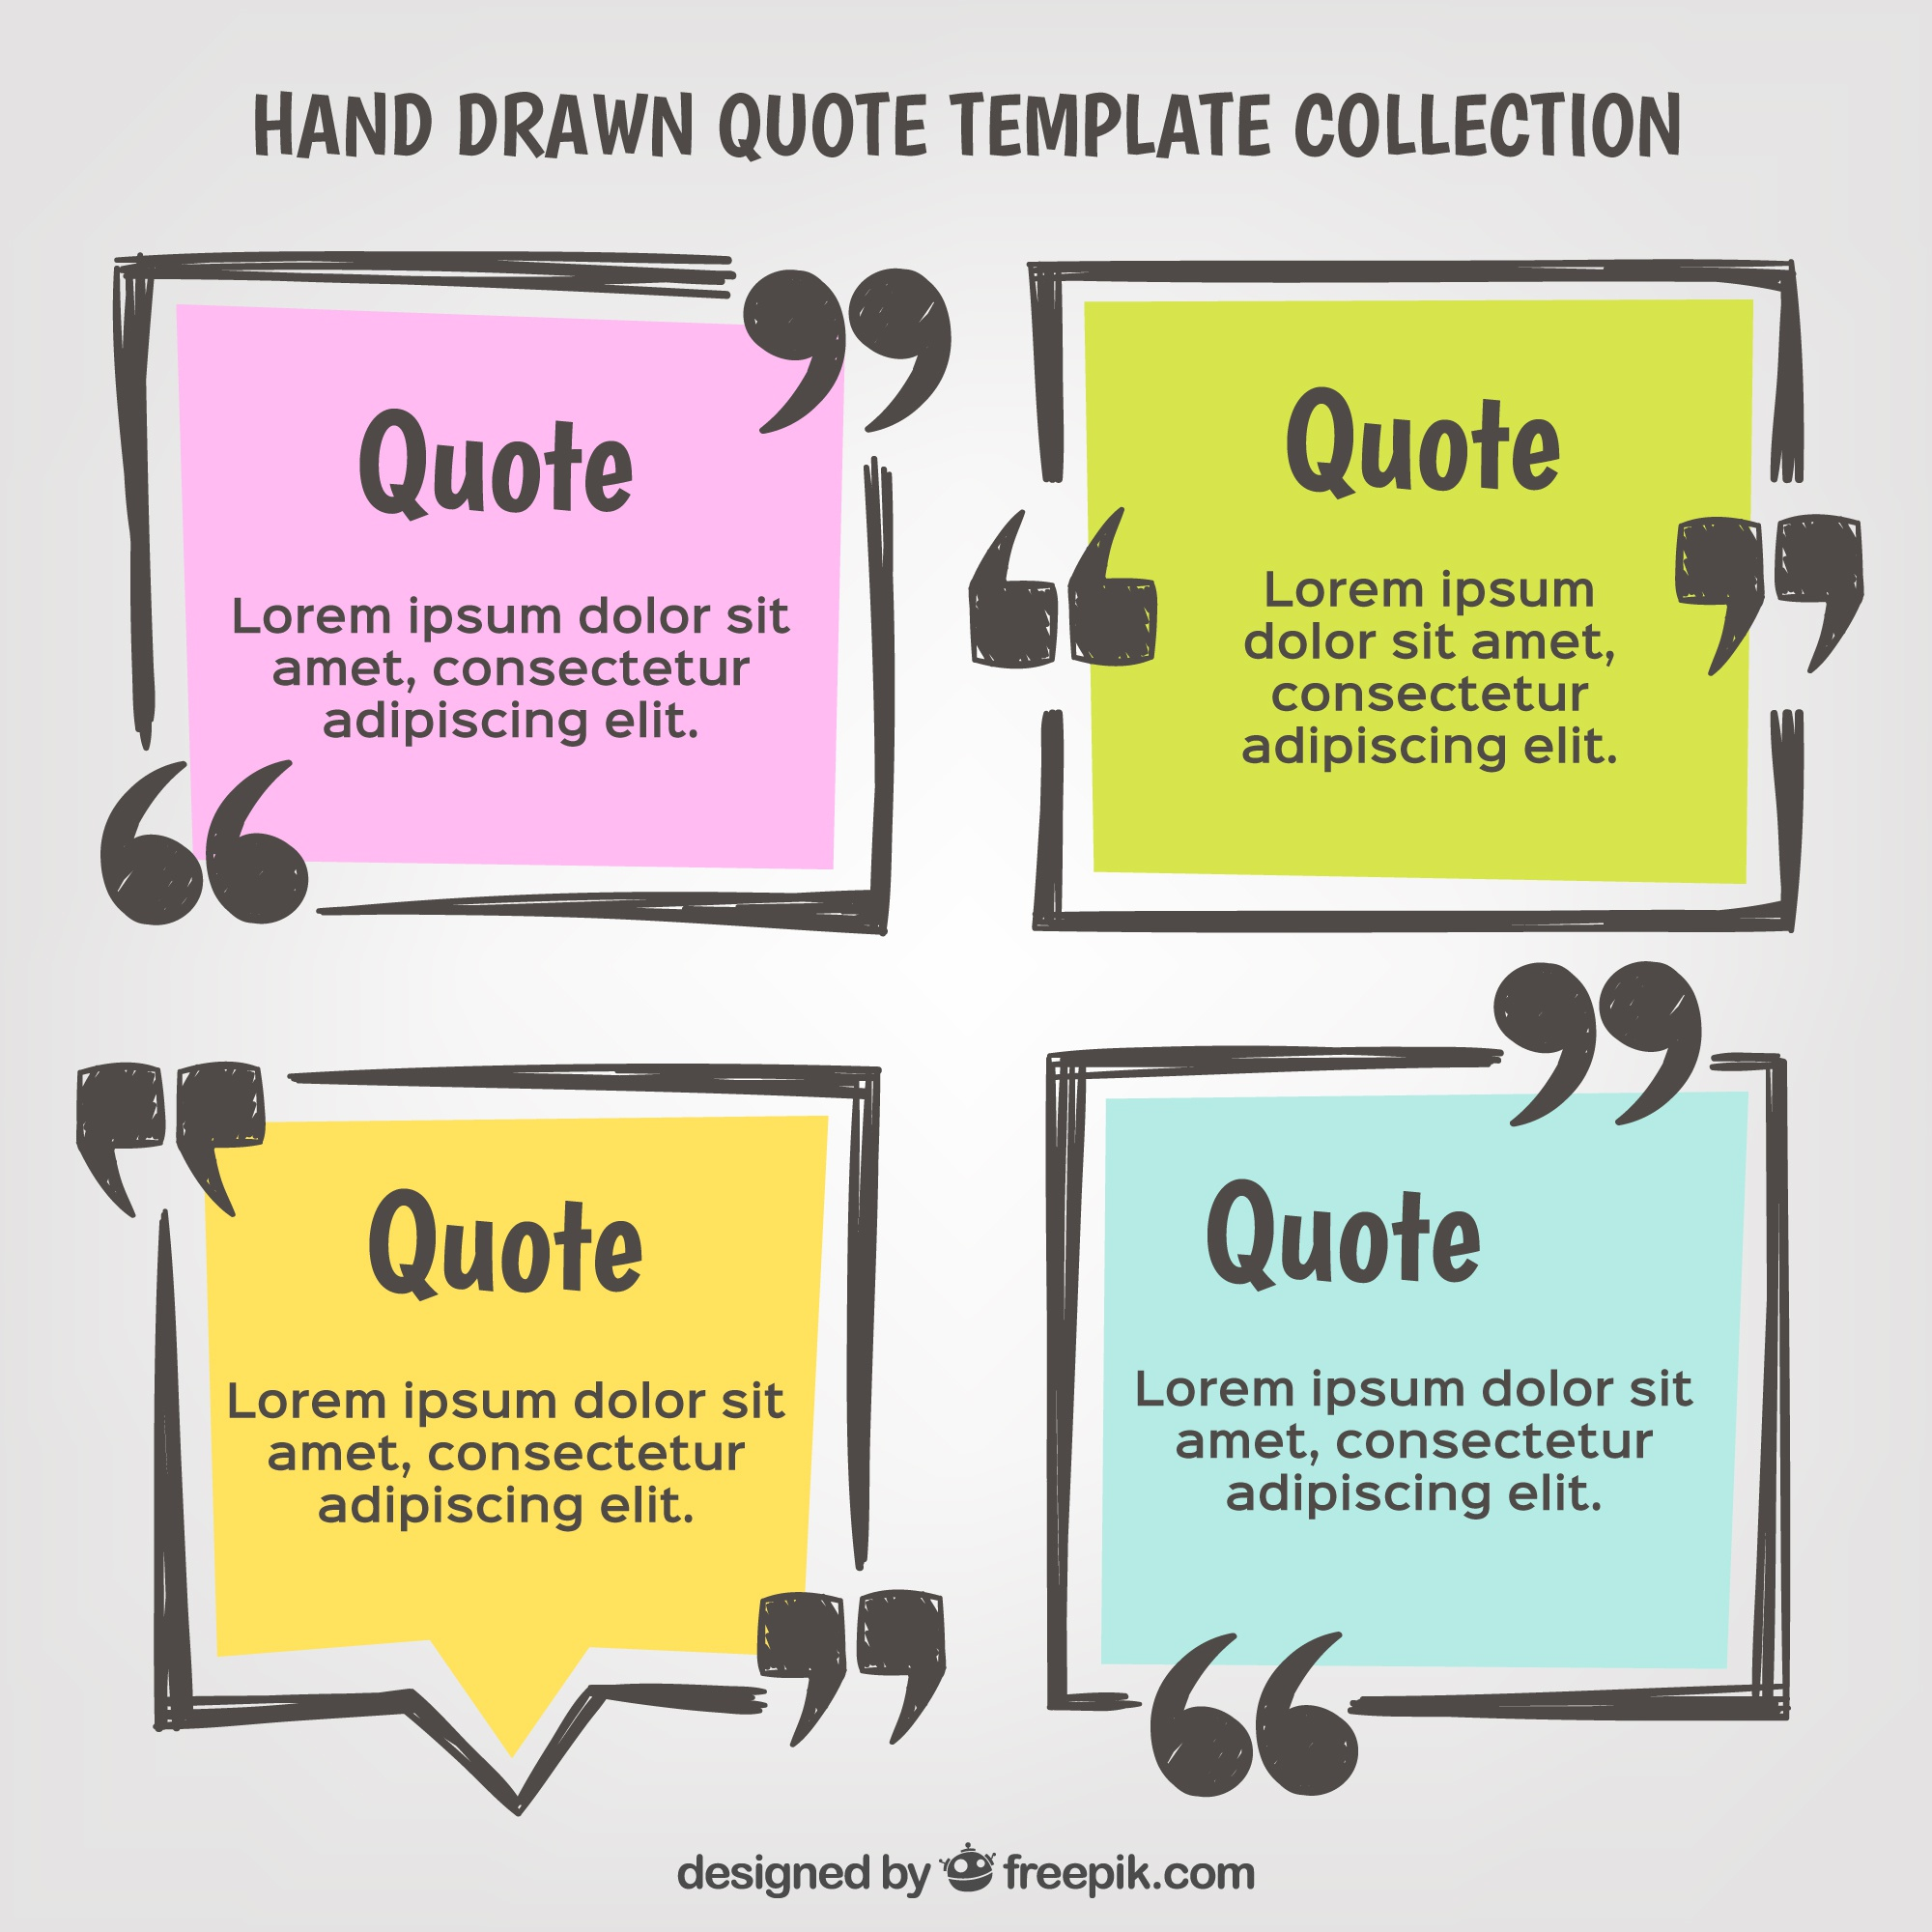 Hand drawn quote template set